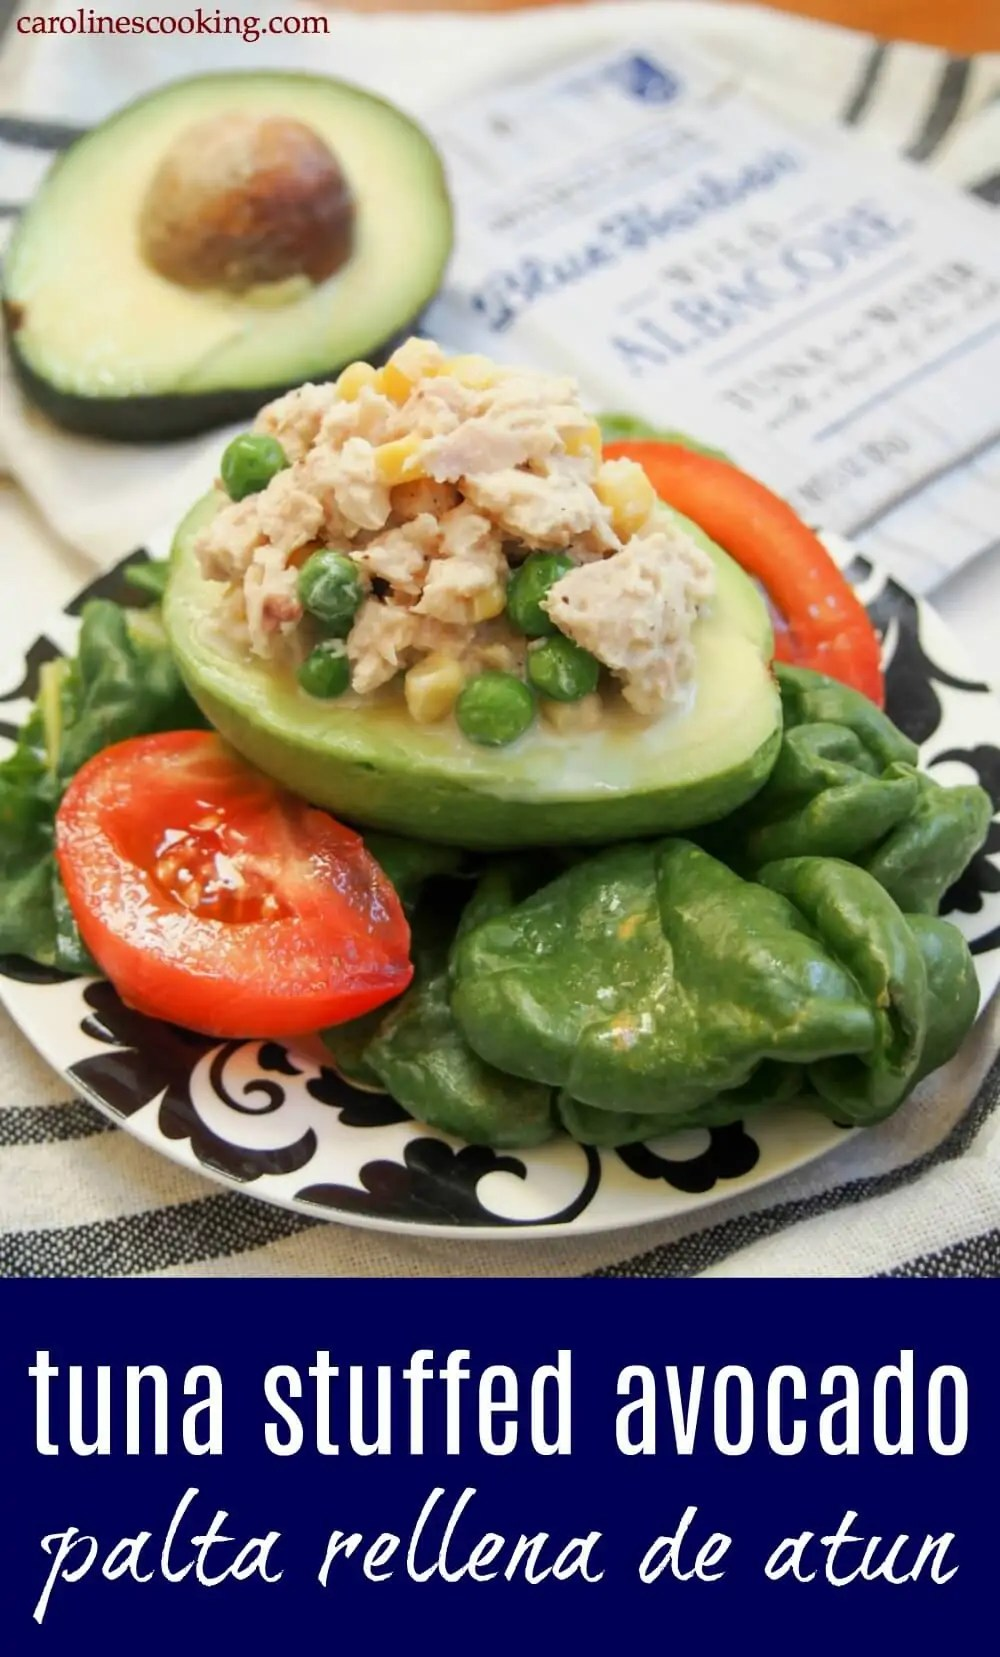 Looking for an easy, no-cook dish? This tuna stuffed avocado comes together in 5 minutes and makes a delicious, healthy lunch or appetizer! Palta Rellena is a common dish in South America, particularly Peru and Chile, and comes with different stuffings, but it can hardly get easier than this tuna version. Simple, tasty flavors that are perfect anytime. #BlueHarborFishCo AD https://www.carolinescooking.com/tuna-stuffed-avocado-palta-rellena/